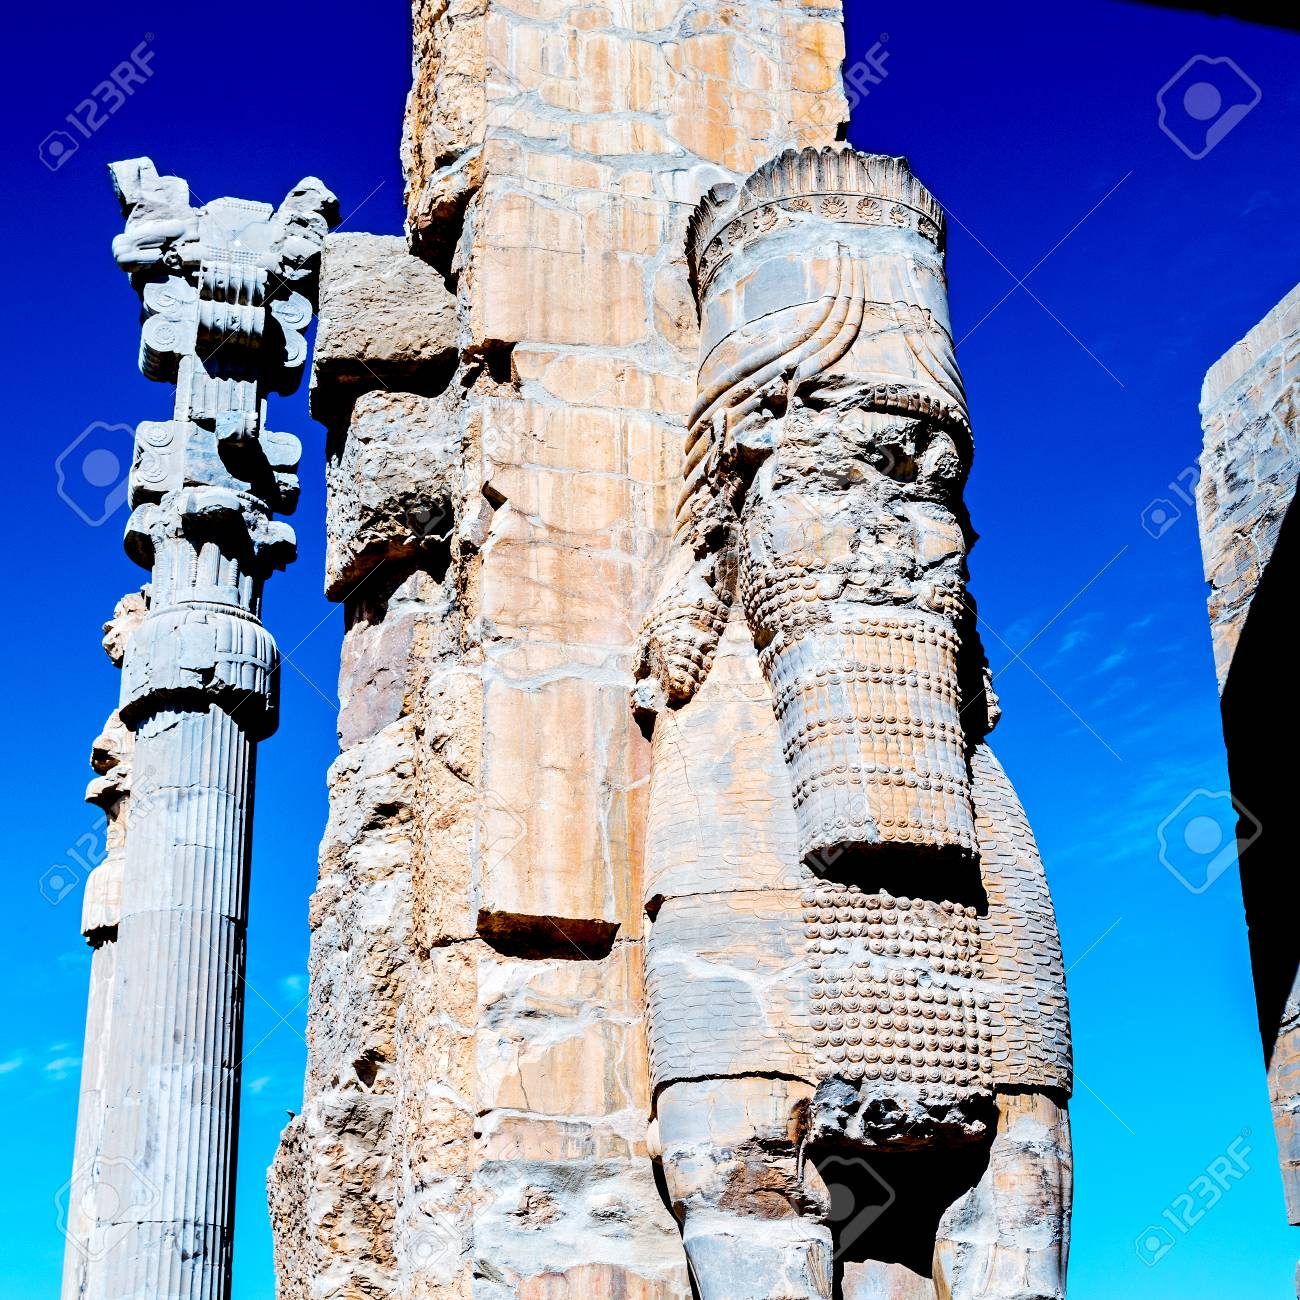 Blur In Iran Persepolis The Old Ruins Historical Destination Stock Photo Picture And Royalty Free Image Image 75242401